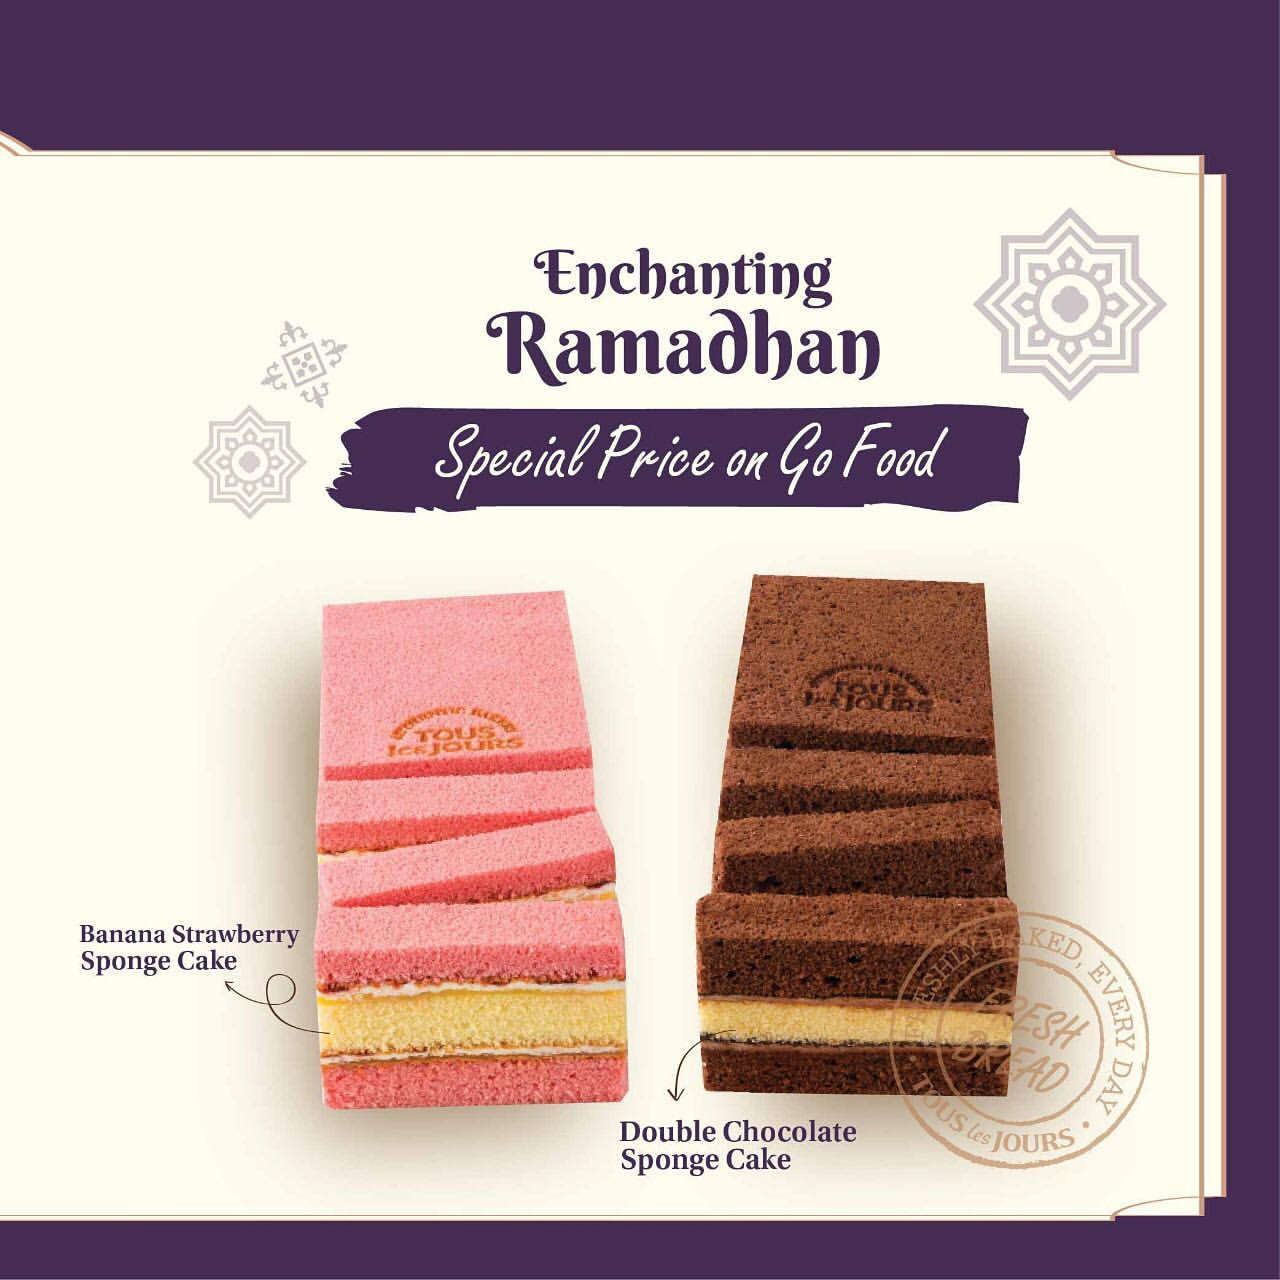 Tous Les Jours Enchanting Ramadhan Promo Special Price on GoFood